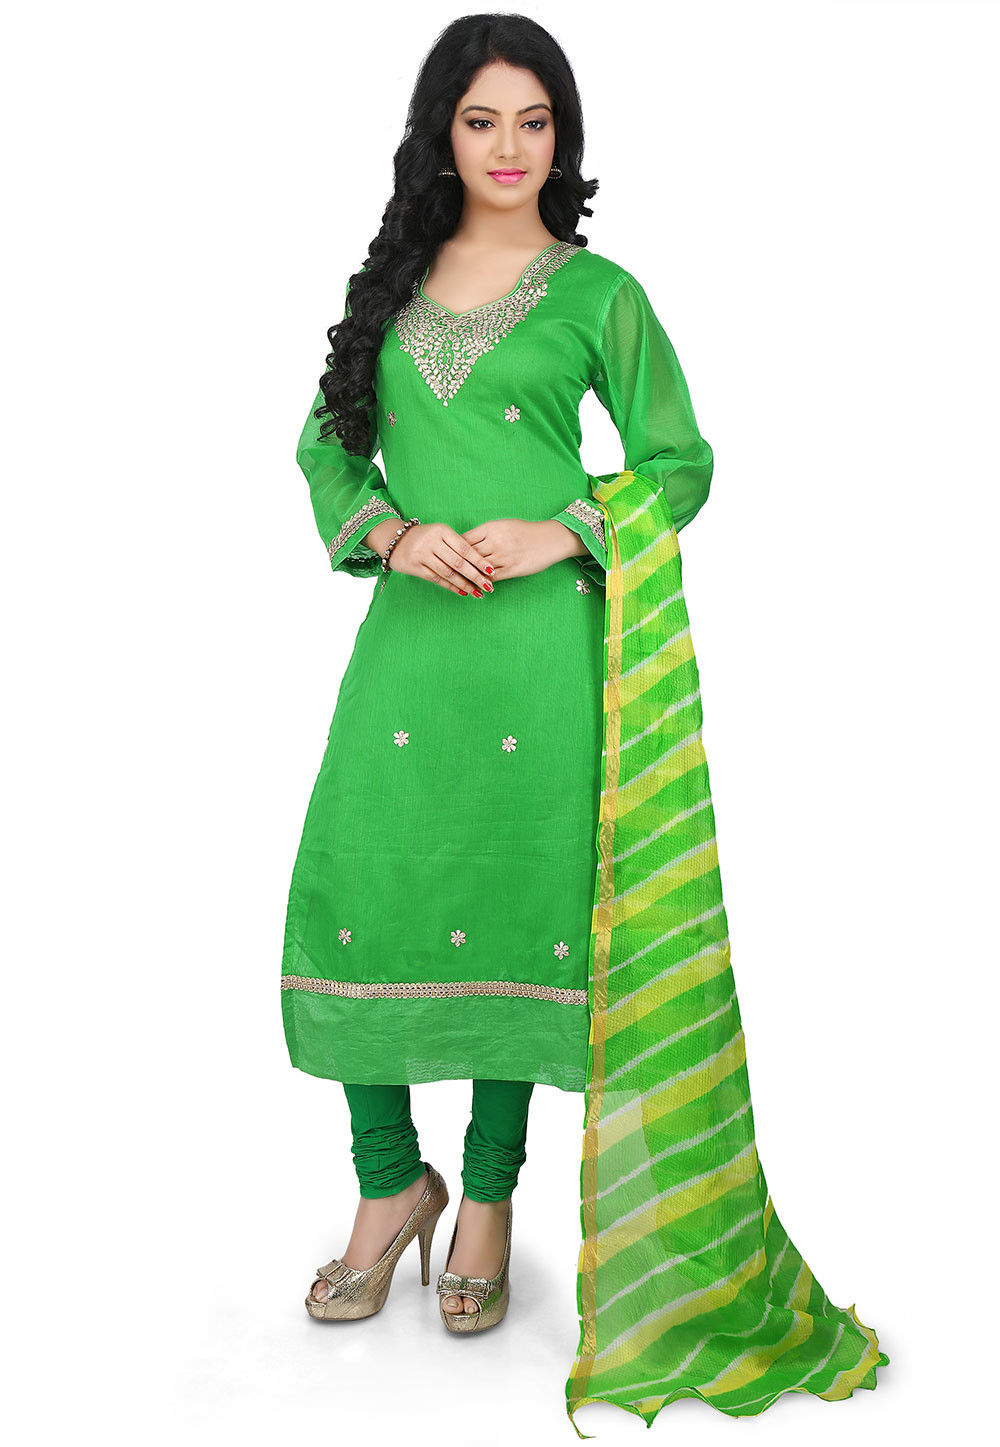 Embroidered Art Chandari Cotton Straight Cut Suit in Green